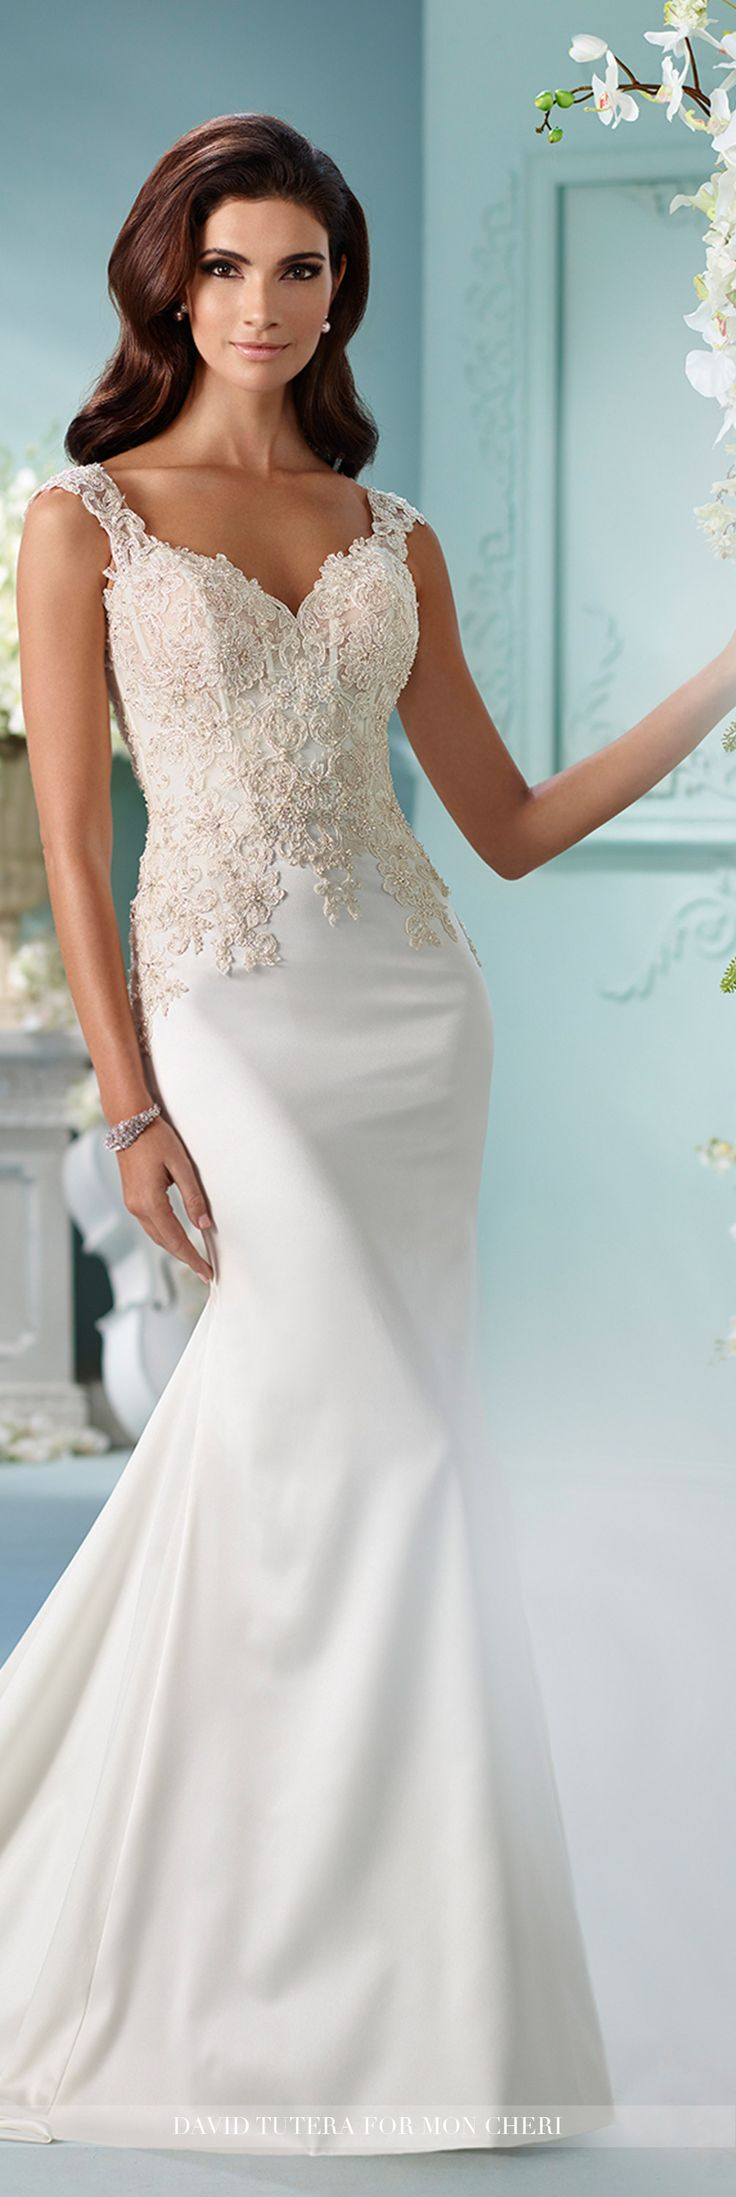 445 best Wedding Gowns images on Pinterest | Wedding frocks ...